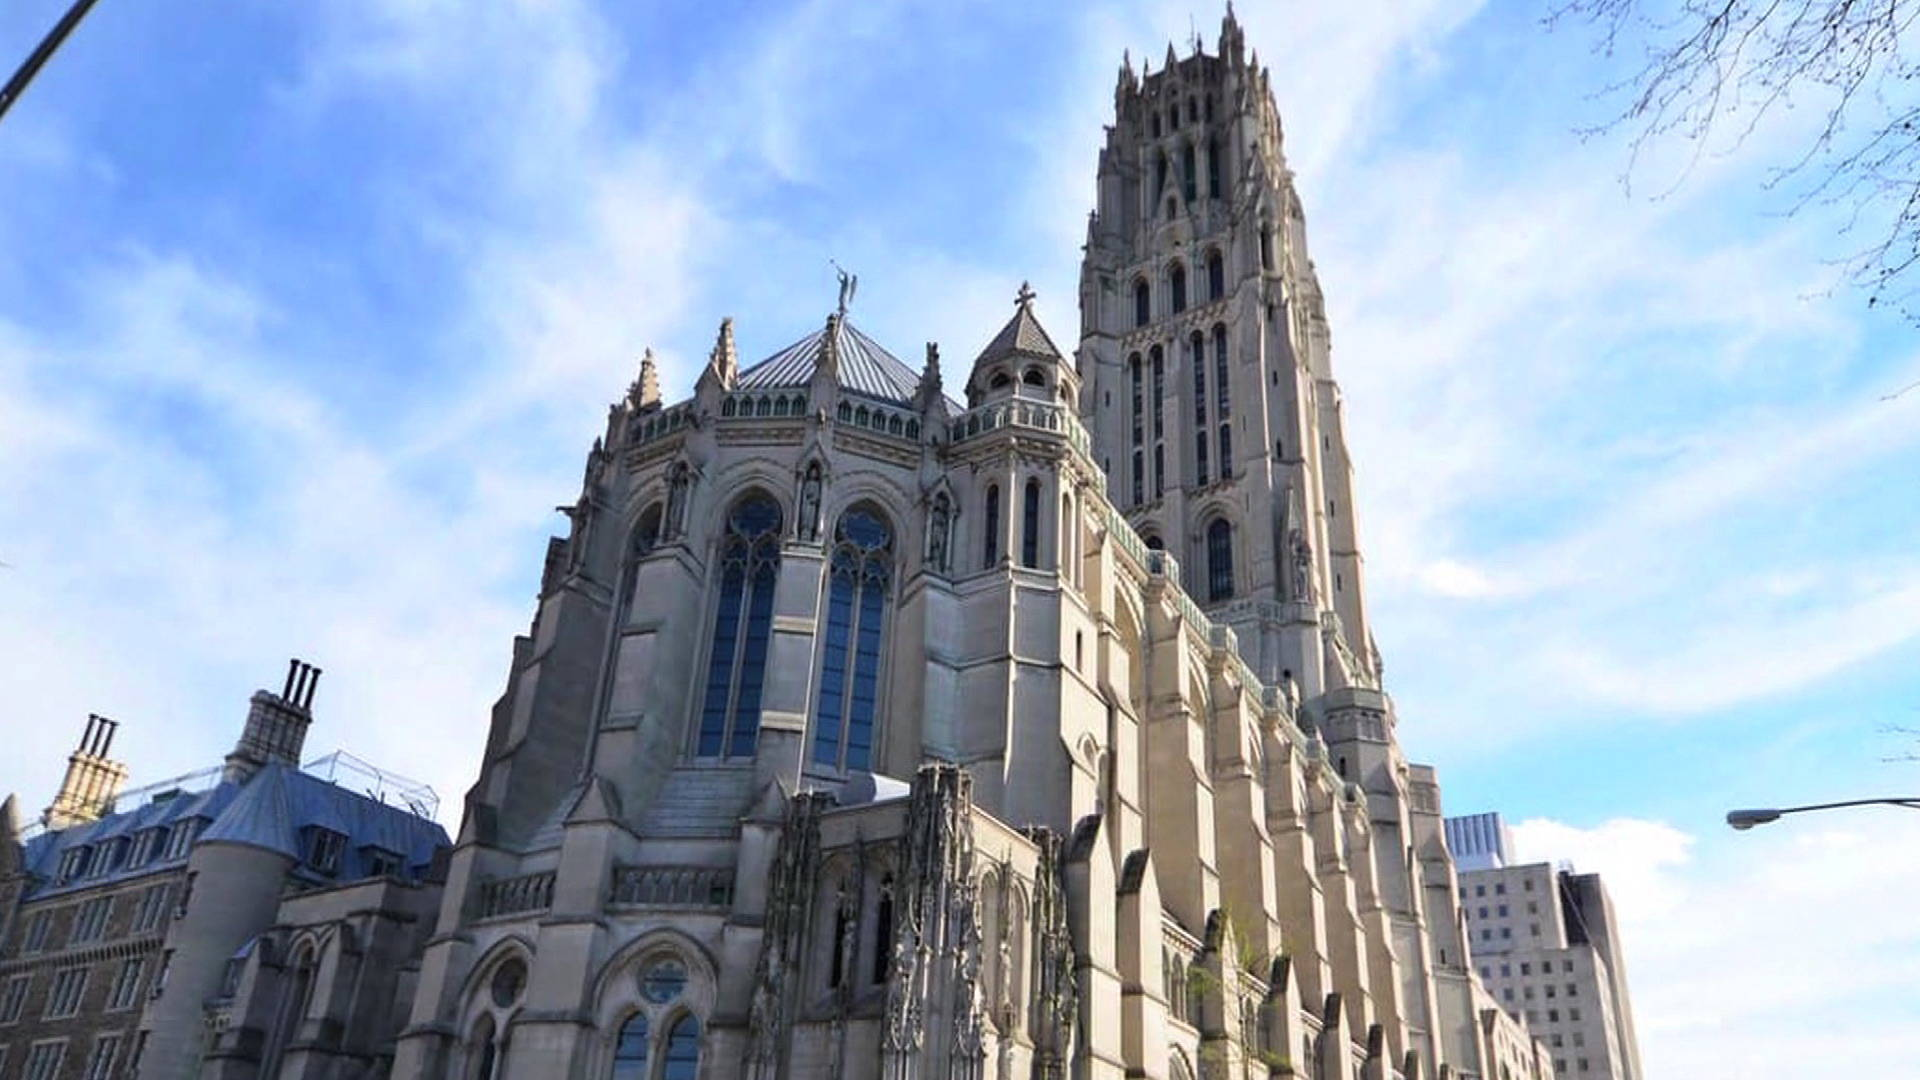 Univ Of Kentucky >> New York's Riverside Church to Divest from Fossil Fuels ...